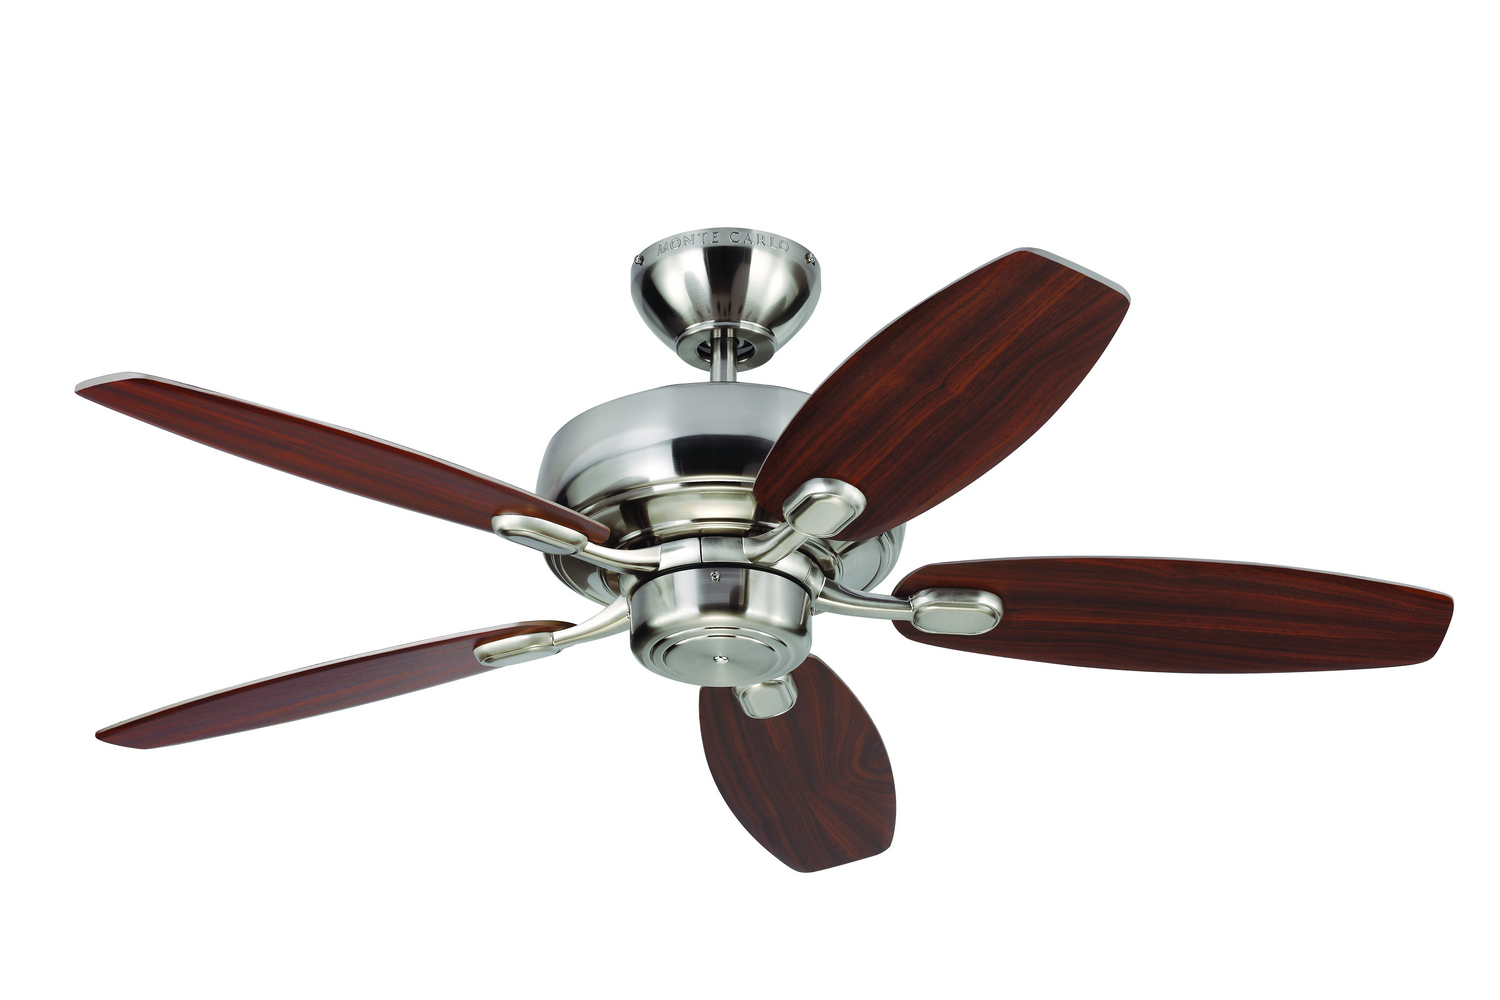 44 inch Ceiling Fan from the Centro Max II collection by Monte Carlo 5CQM44BS